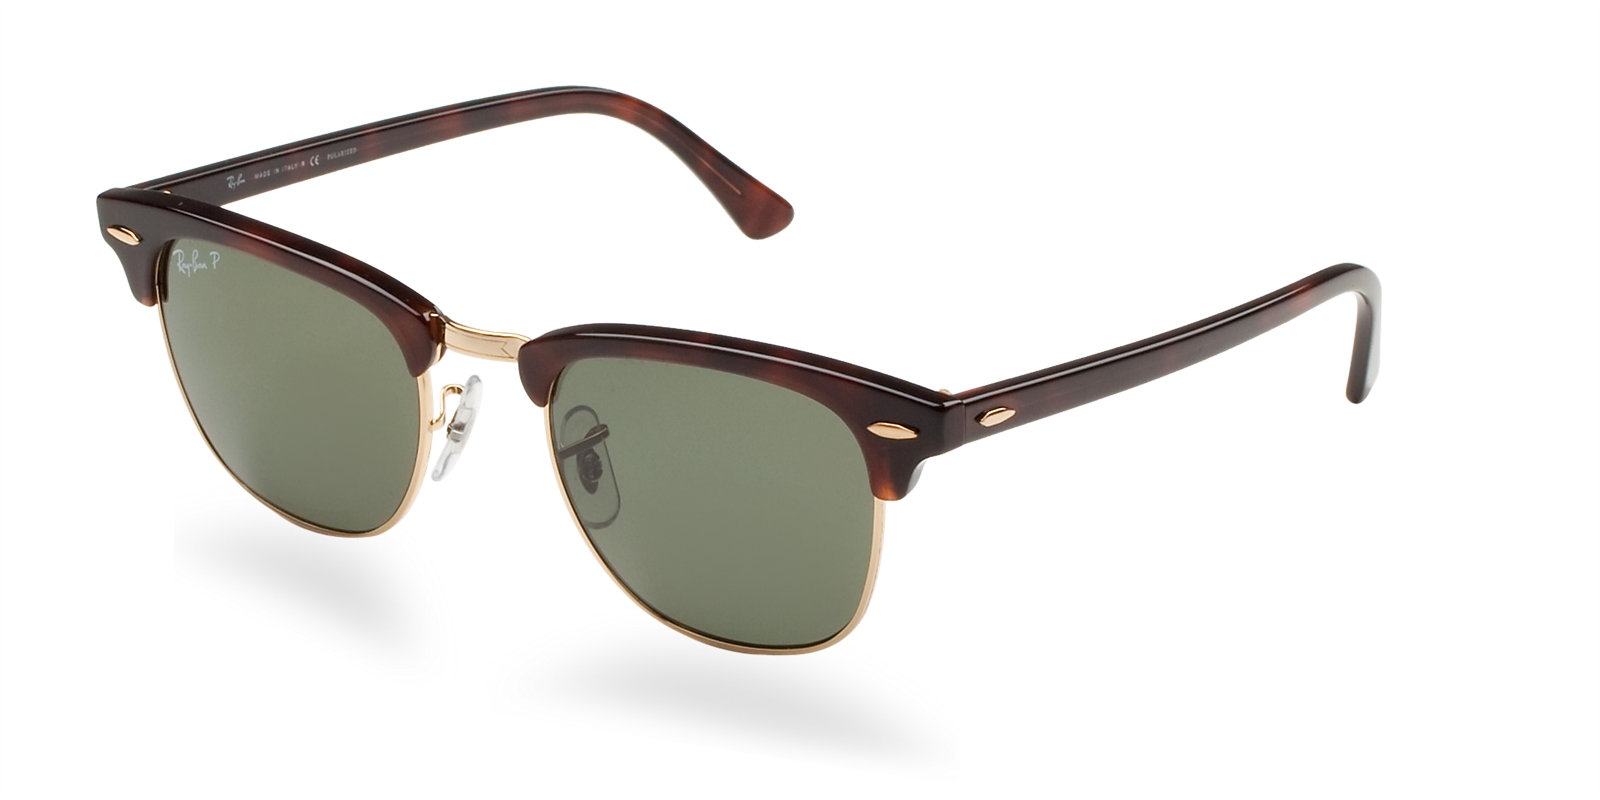 2776709660 Previous  Next. Previous  Next. RAY-BAN RB3016 990 58 POLARIZED TORTOISE  CLUBMASTER SUNGLASSES